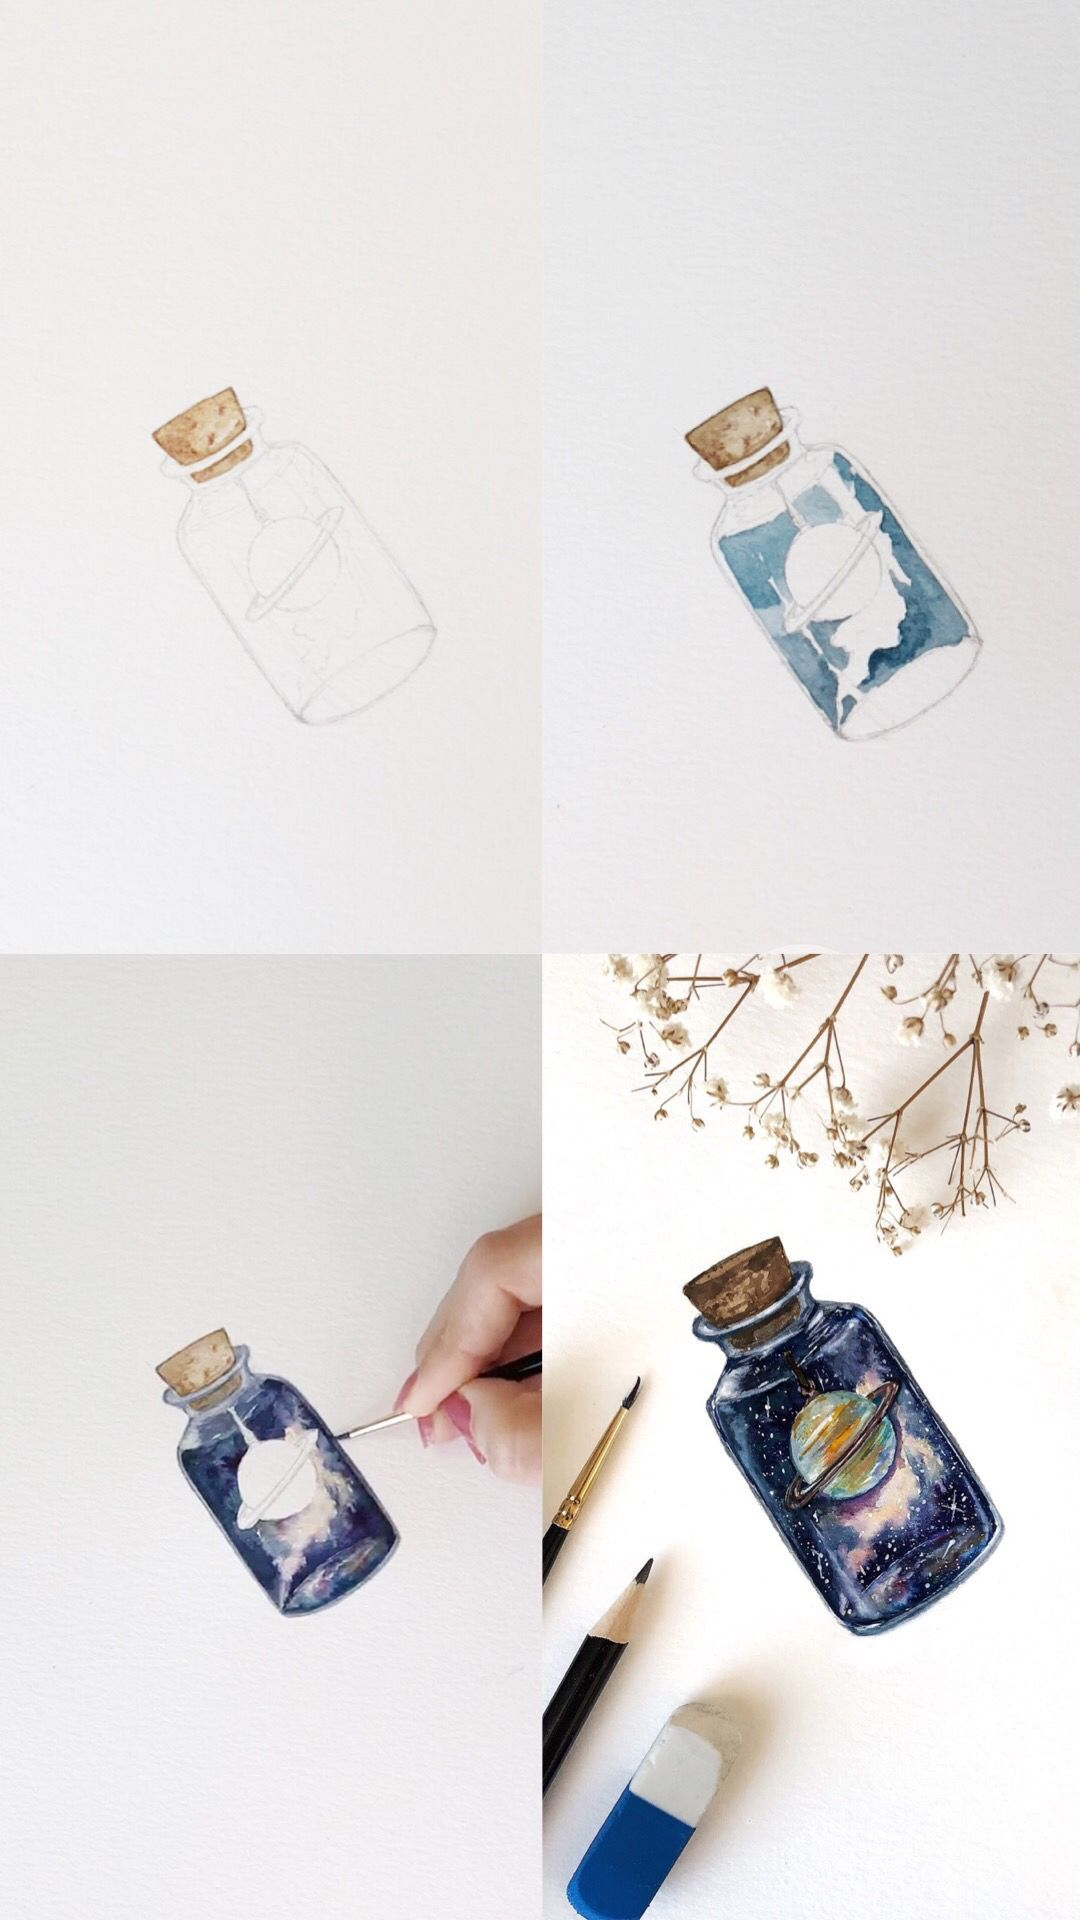 Mini Galaxy in a bottle with Saturn doodle tutorial with step by step process photos